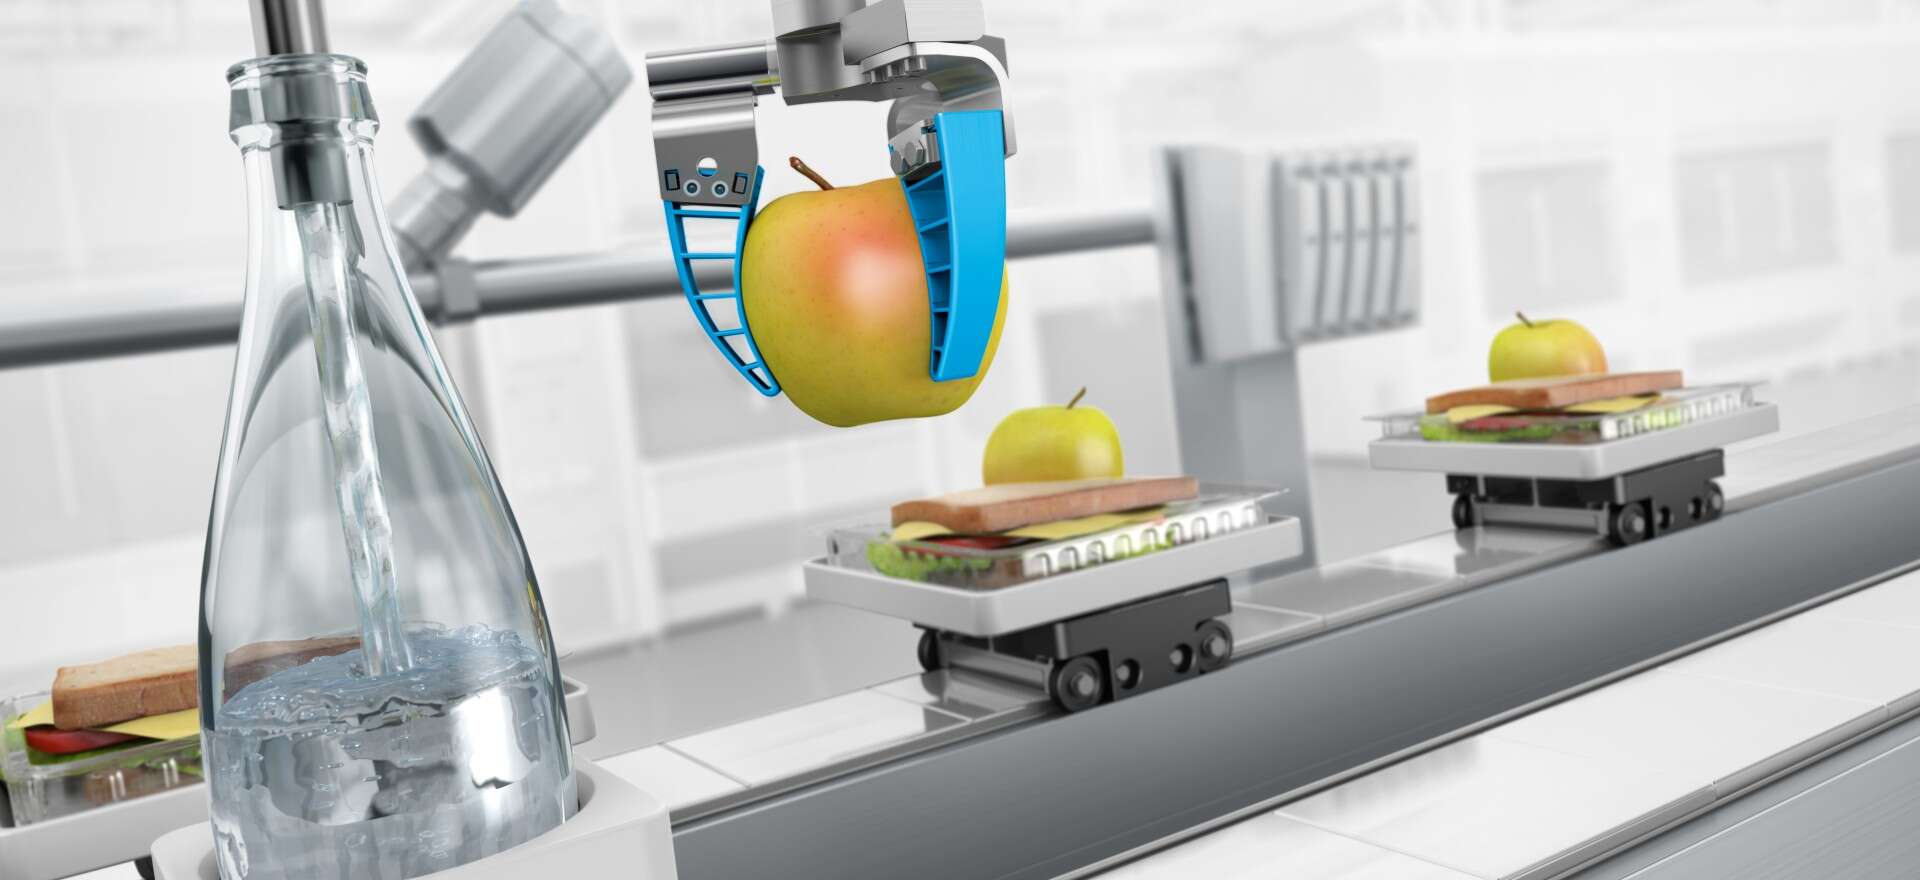 Food processing and the packaging industry